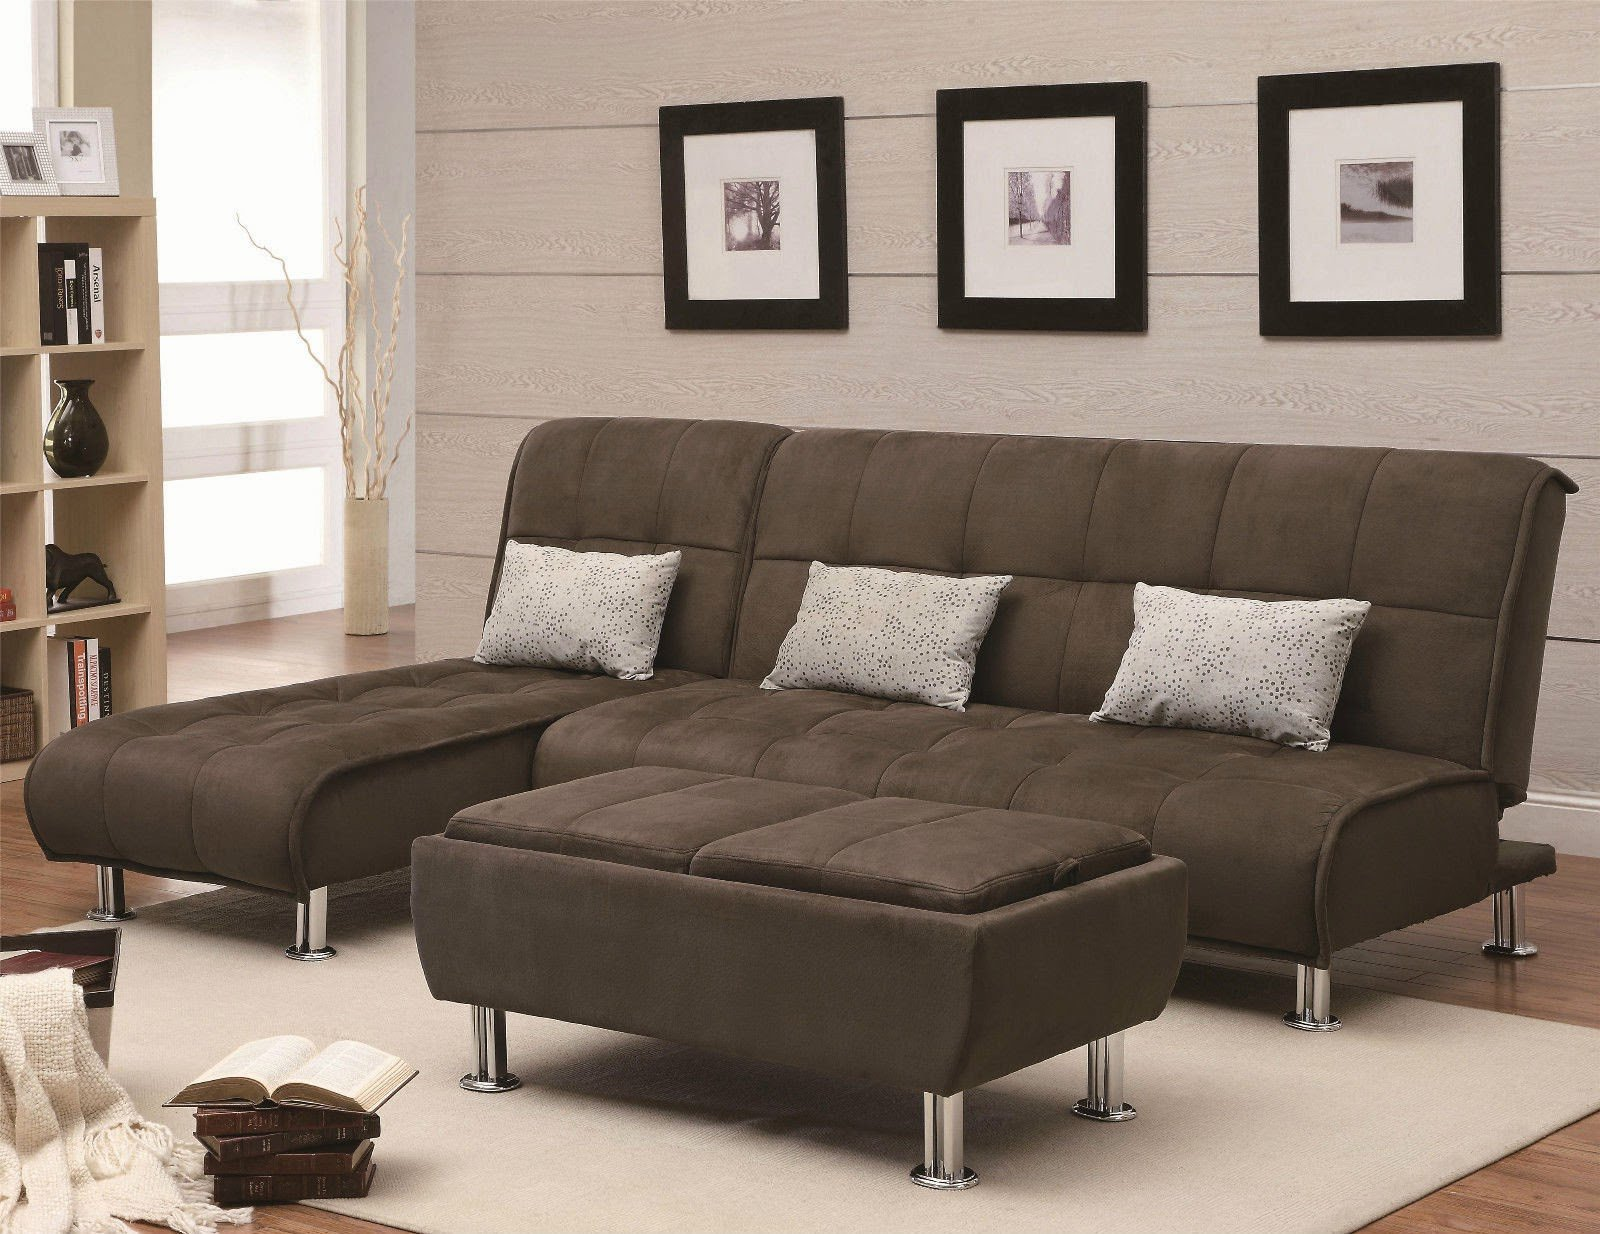 Comfortable Elegant Living Room Elegant Furniture fortable Sectionals sofa for Elegant Living Room Furniture Design